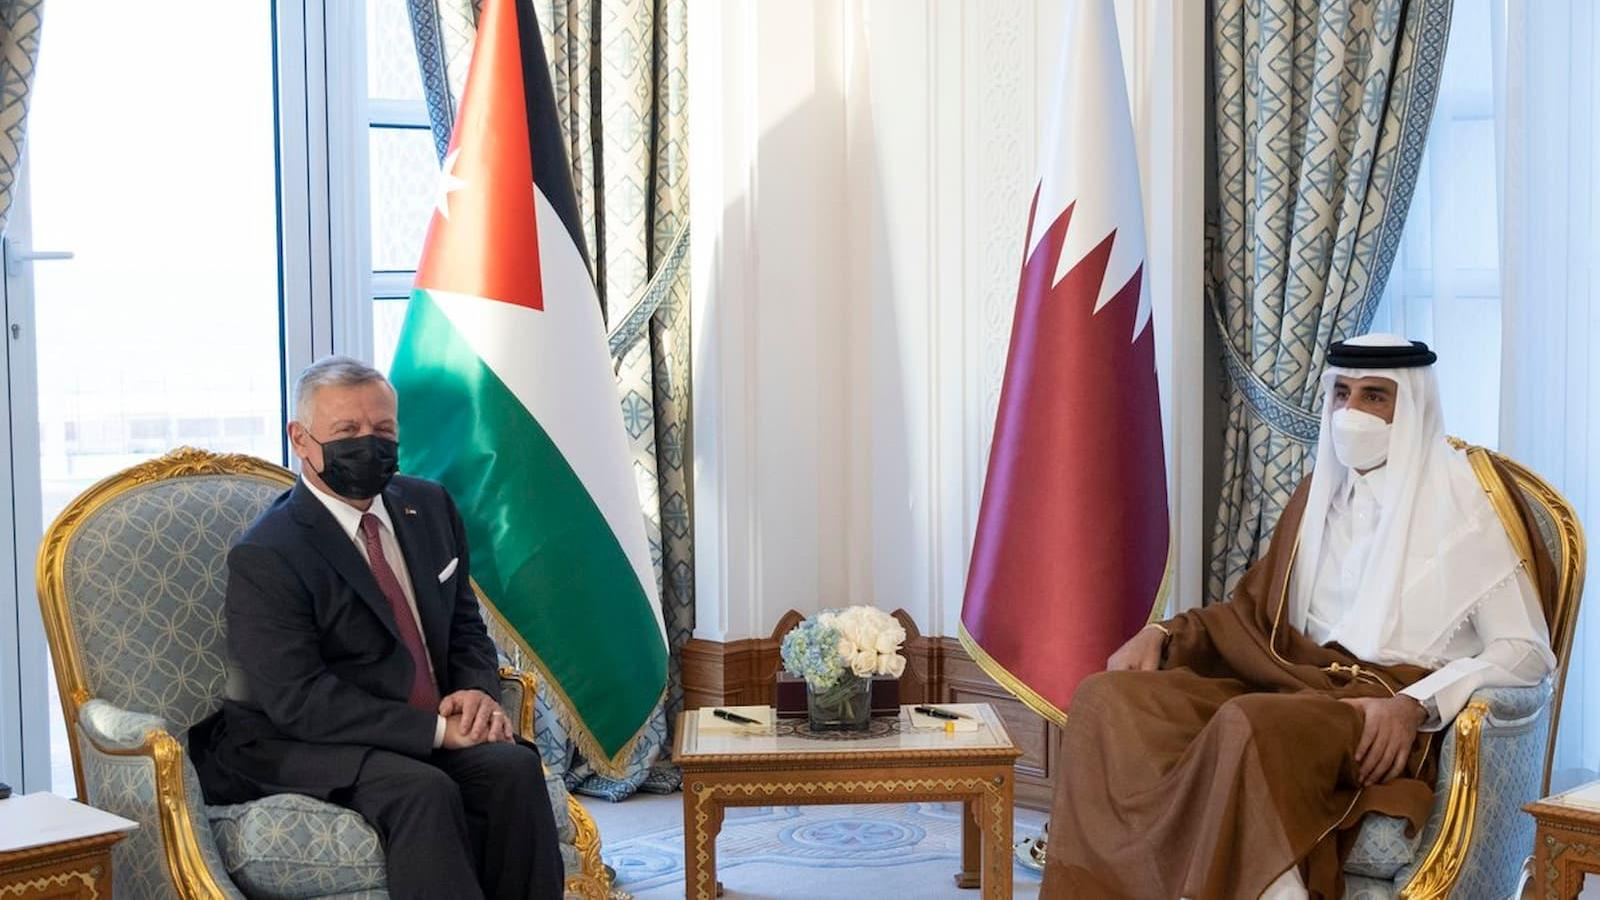 HH the Amir, King of Jordan hold official talks in Doha